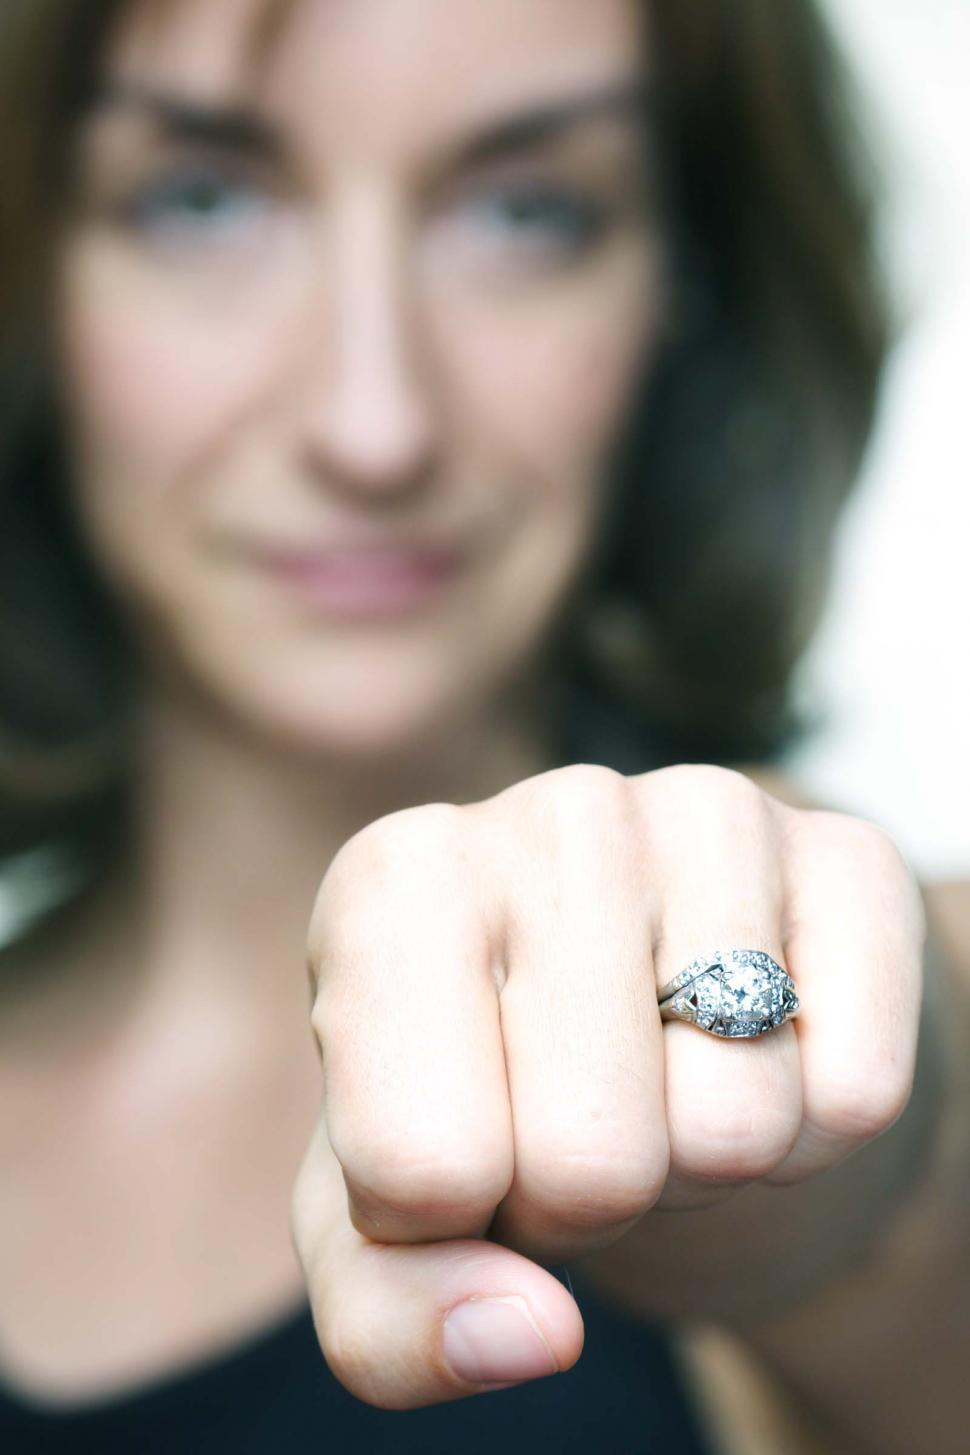 Download Free Stock Photo of The engagement ring